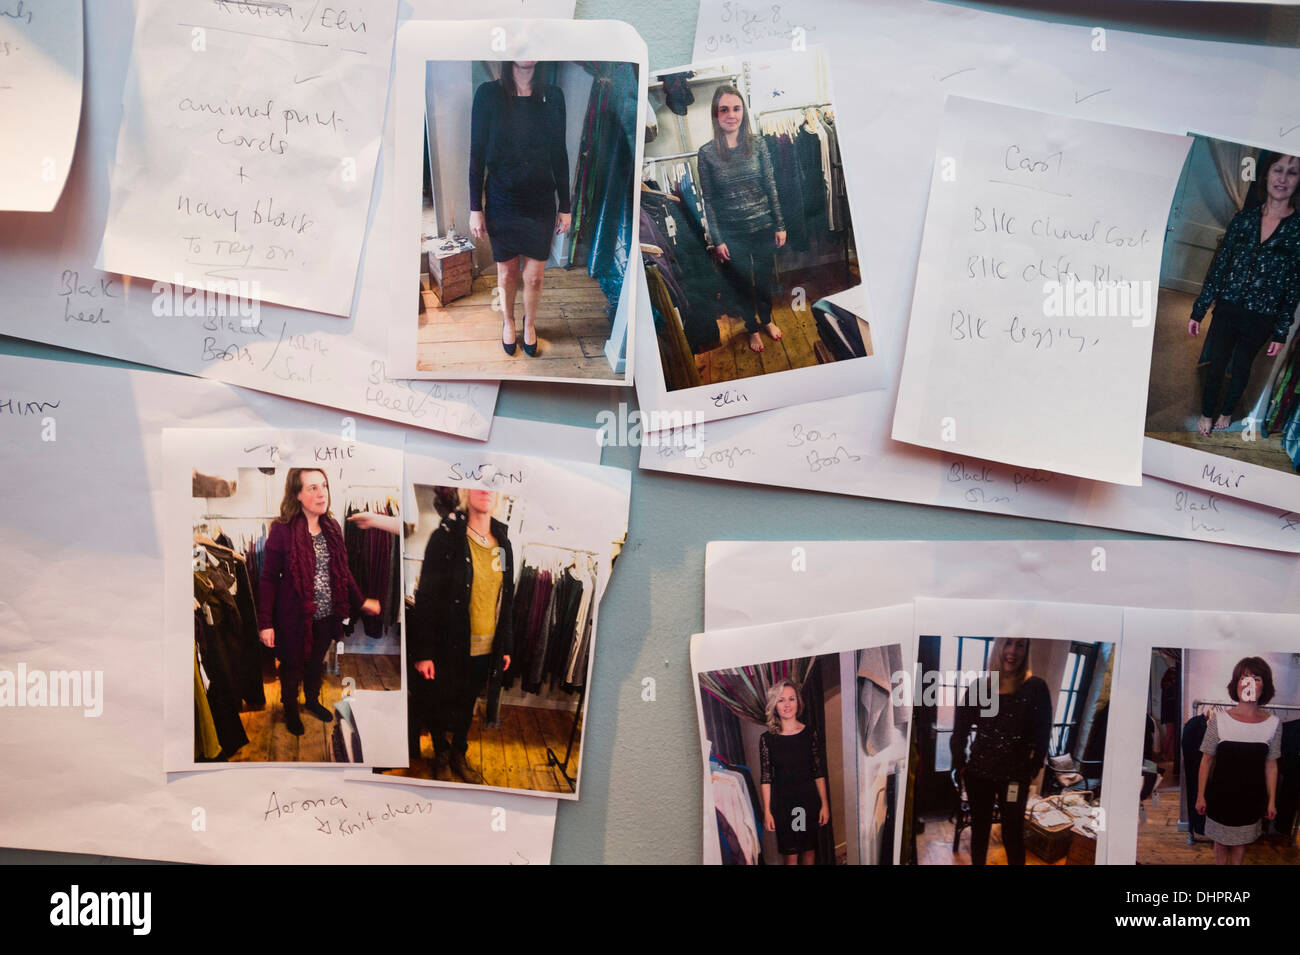 Polaroid pictures and notes showing models clothes and accessories backstage at a catwalk fashion show UK - Stock Image